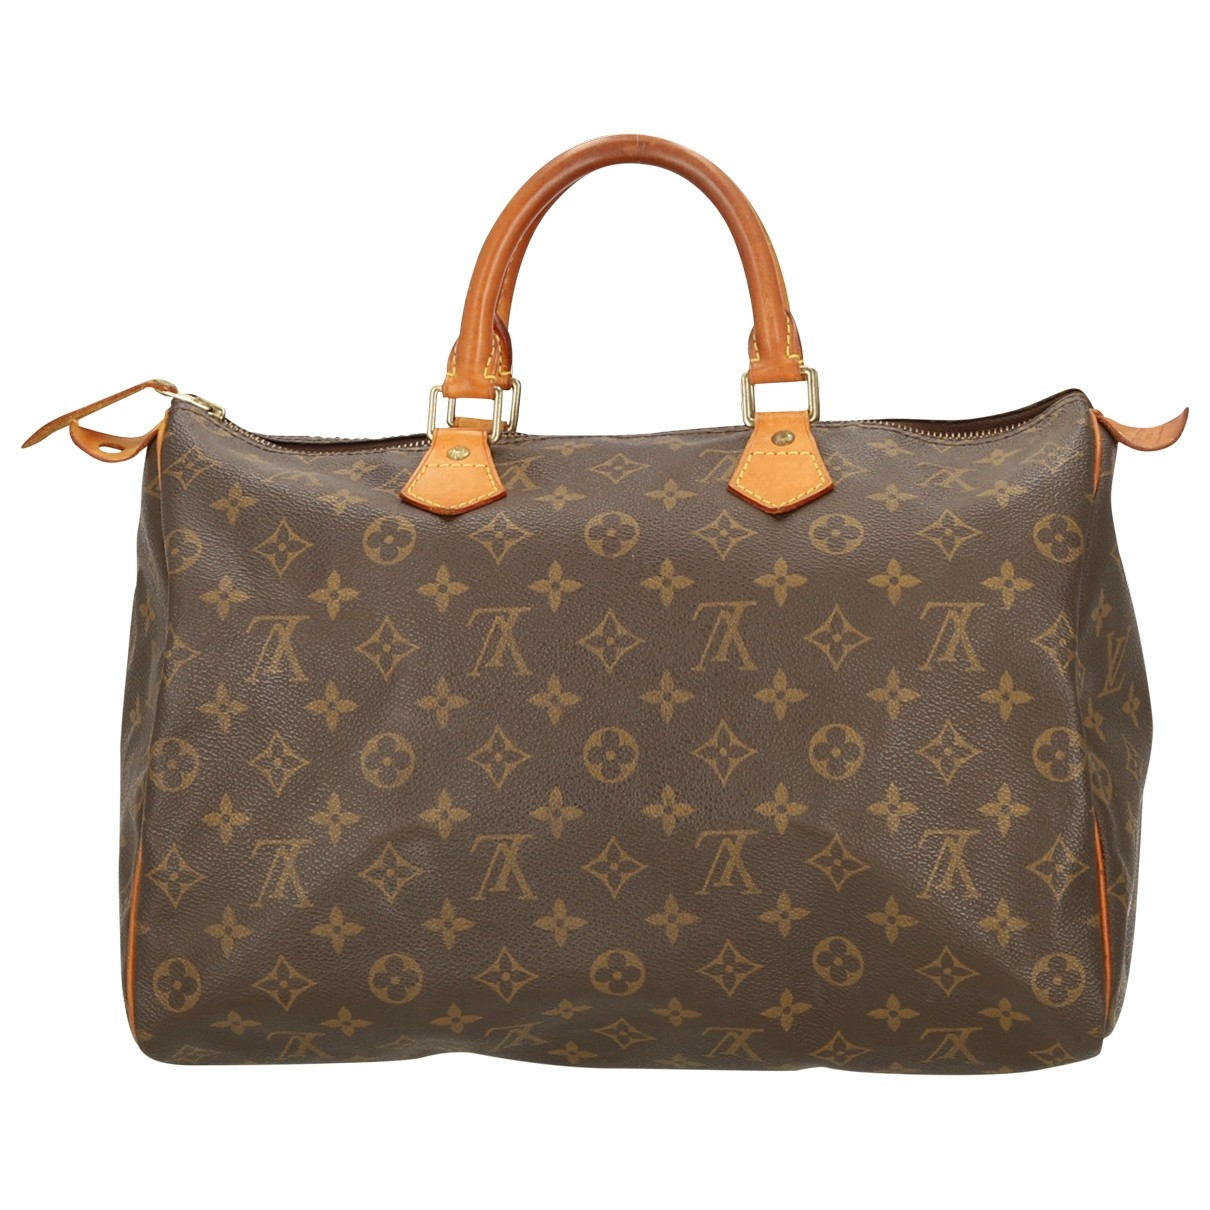 Louis Vuitton Speedy Black Cloth handbag for Women \N